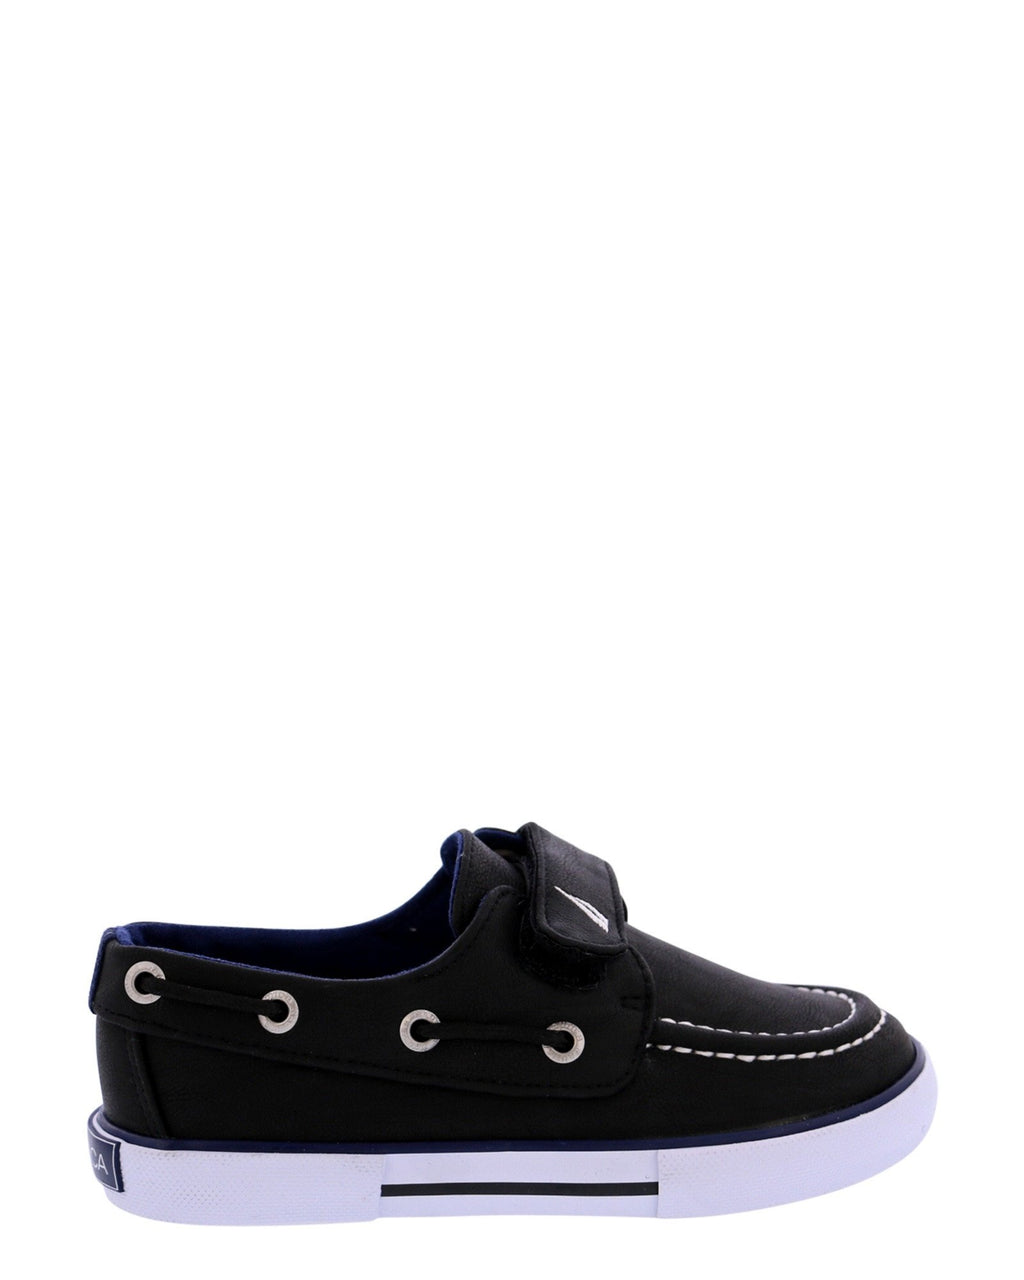 Boy's Little Ruver 2 Loafers (Toddler/PreSchool)